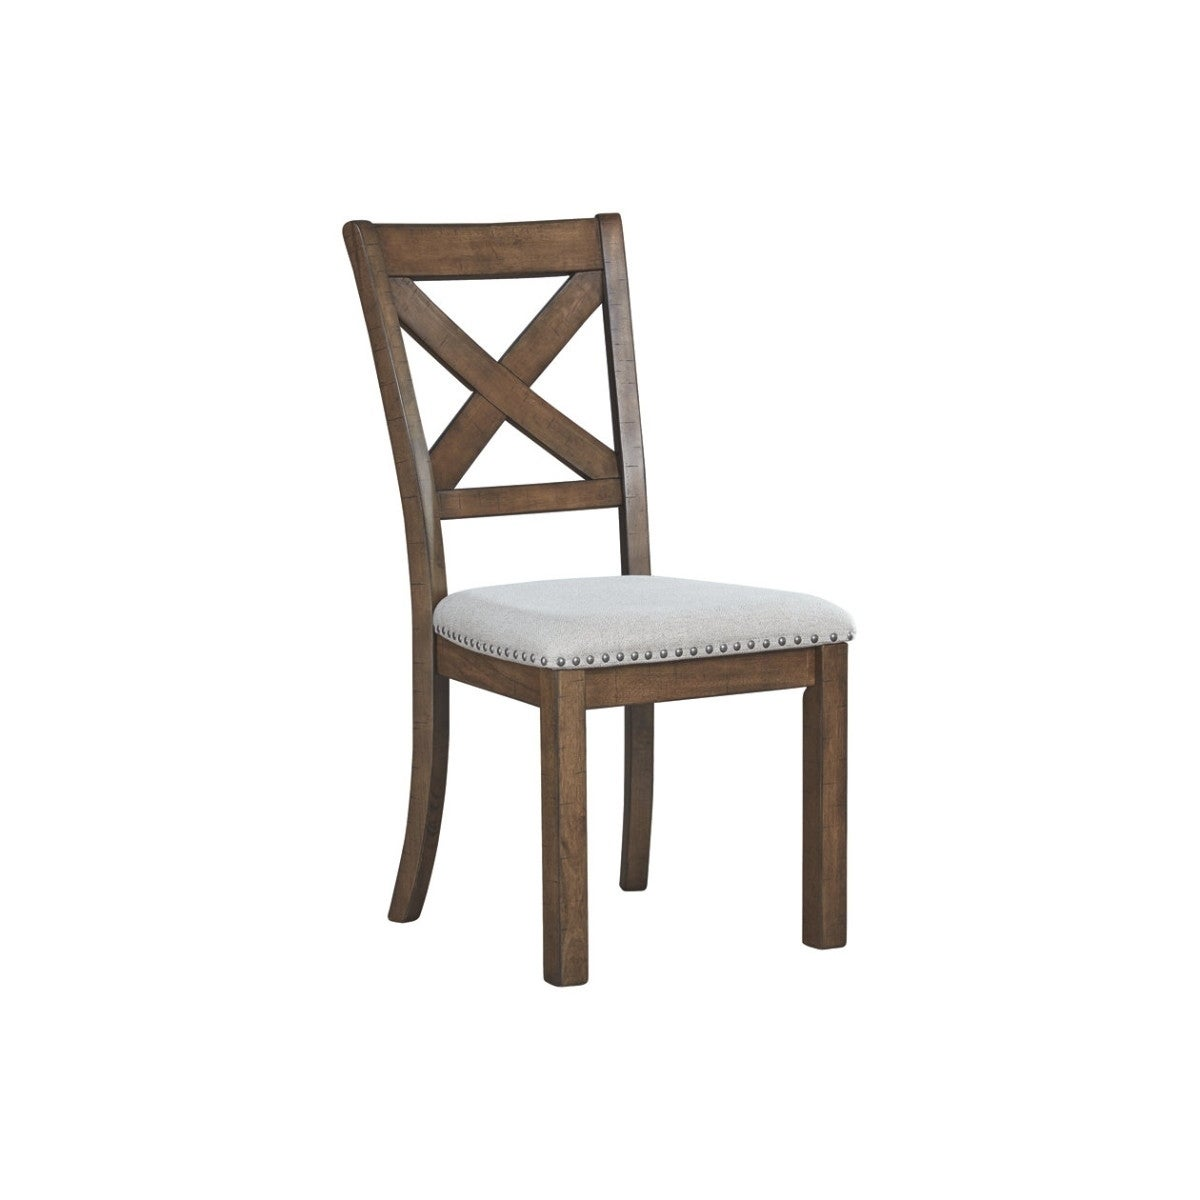 Wooden Dining Side Chair with Polyester Seat and X Back Support, Set of Two, Brown and Beige